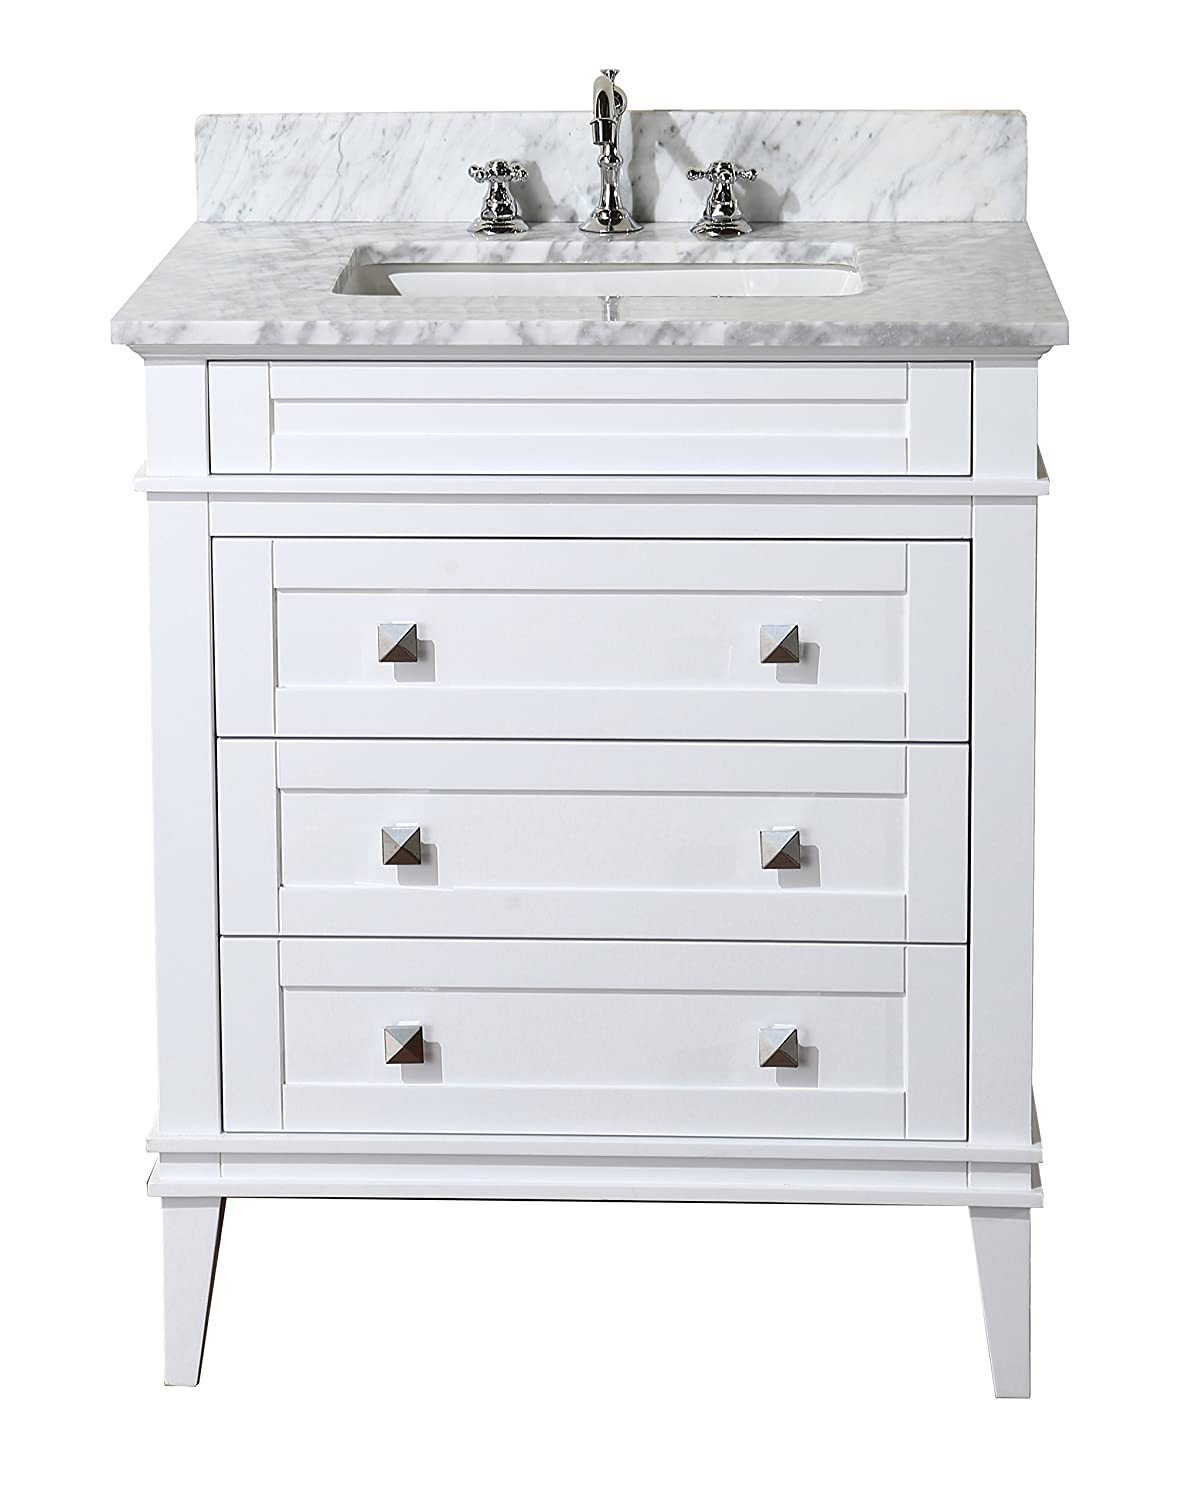 Eleanor 30-inch Bathroom Vanity Carrara White Includes a White Cabinet, Soft Close Drawers, a Natural Italian Carrara Marble Countertop, and a Ceramic Sink